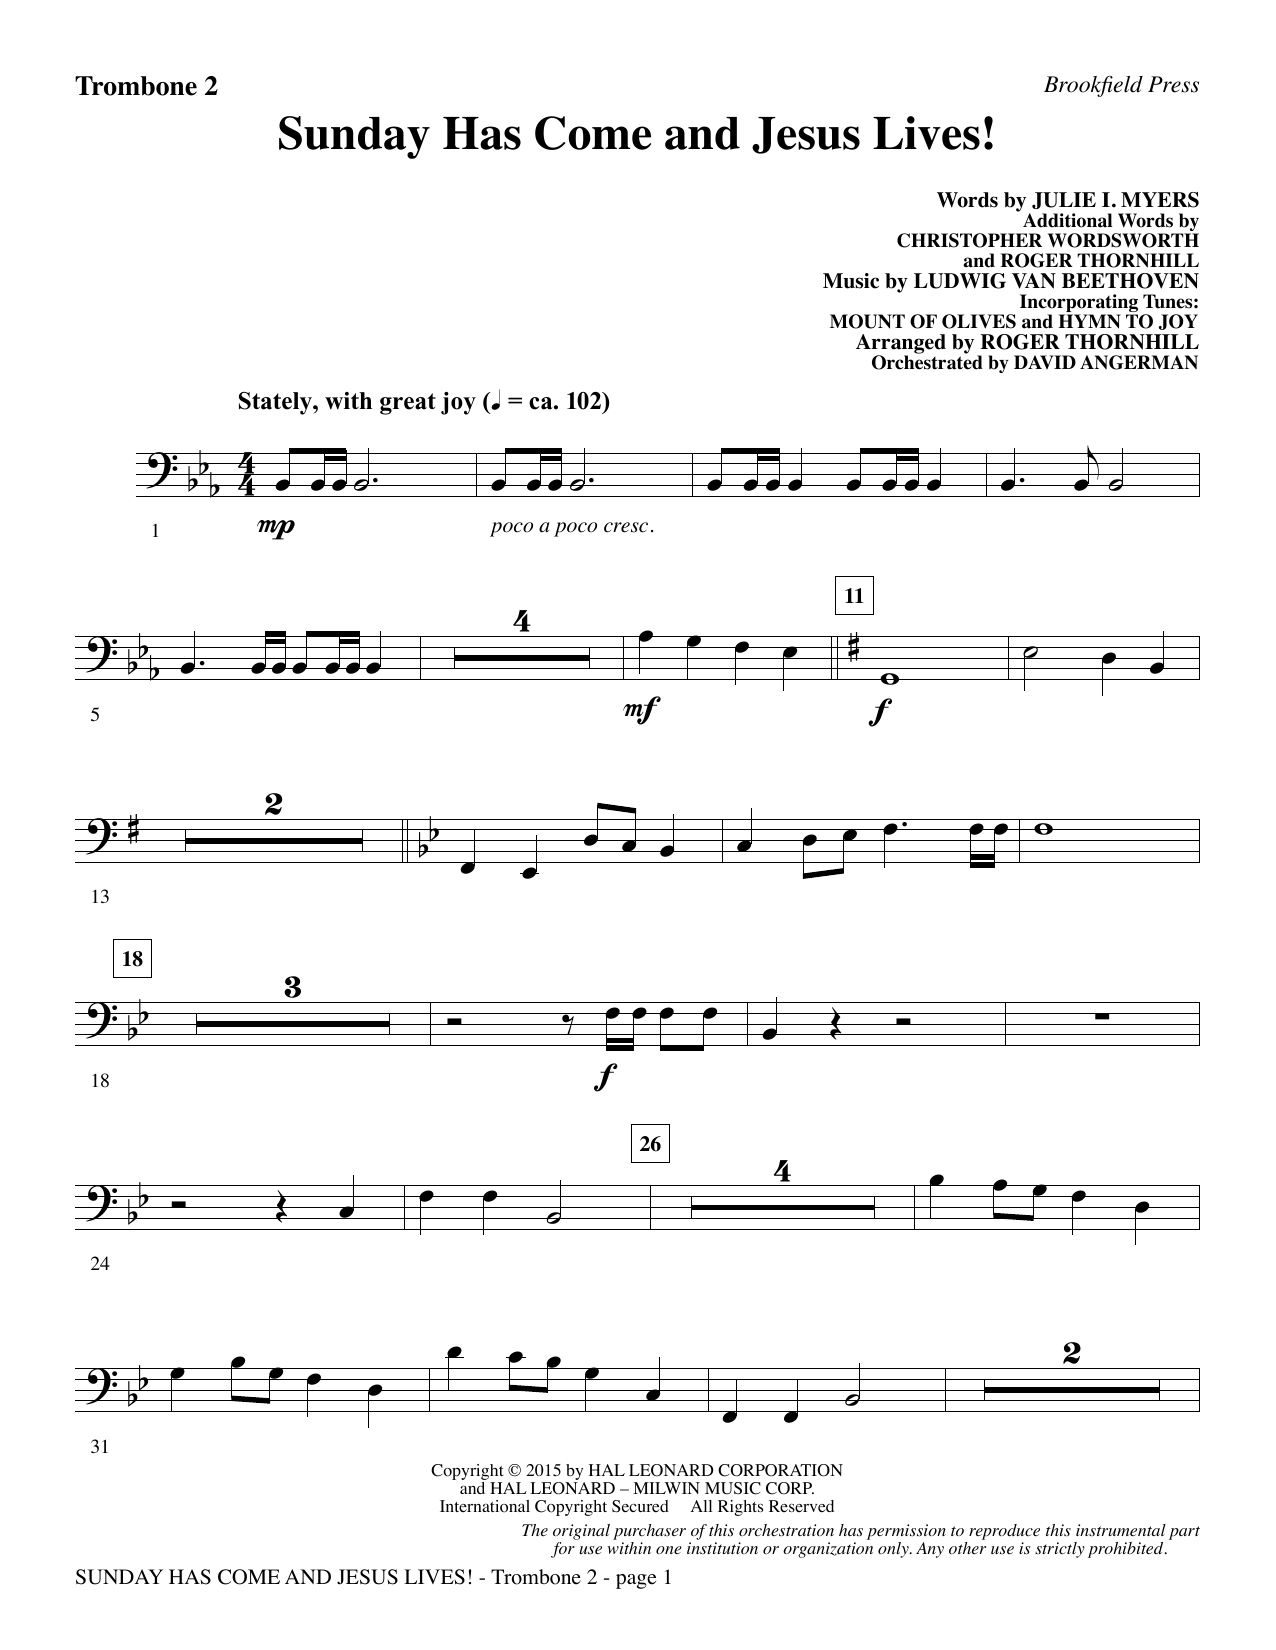 Sunday Has Come and Jesus Lives! - Trombone 2 Sheet Music